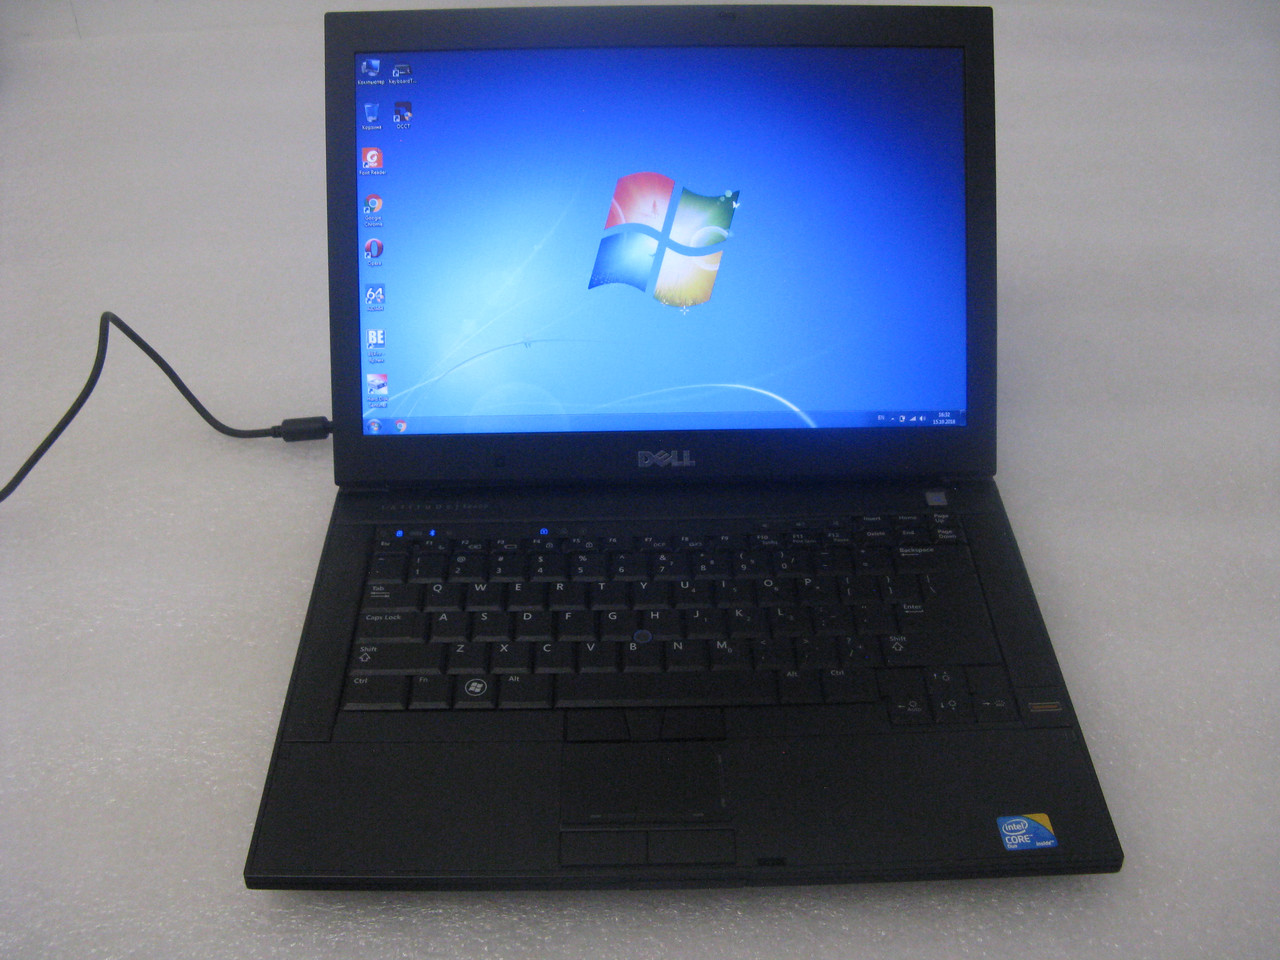 DELL E6400 SD HOST CONTROLLER DRIVER WINDOWS 7 (2019)